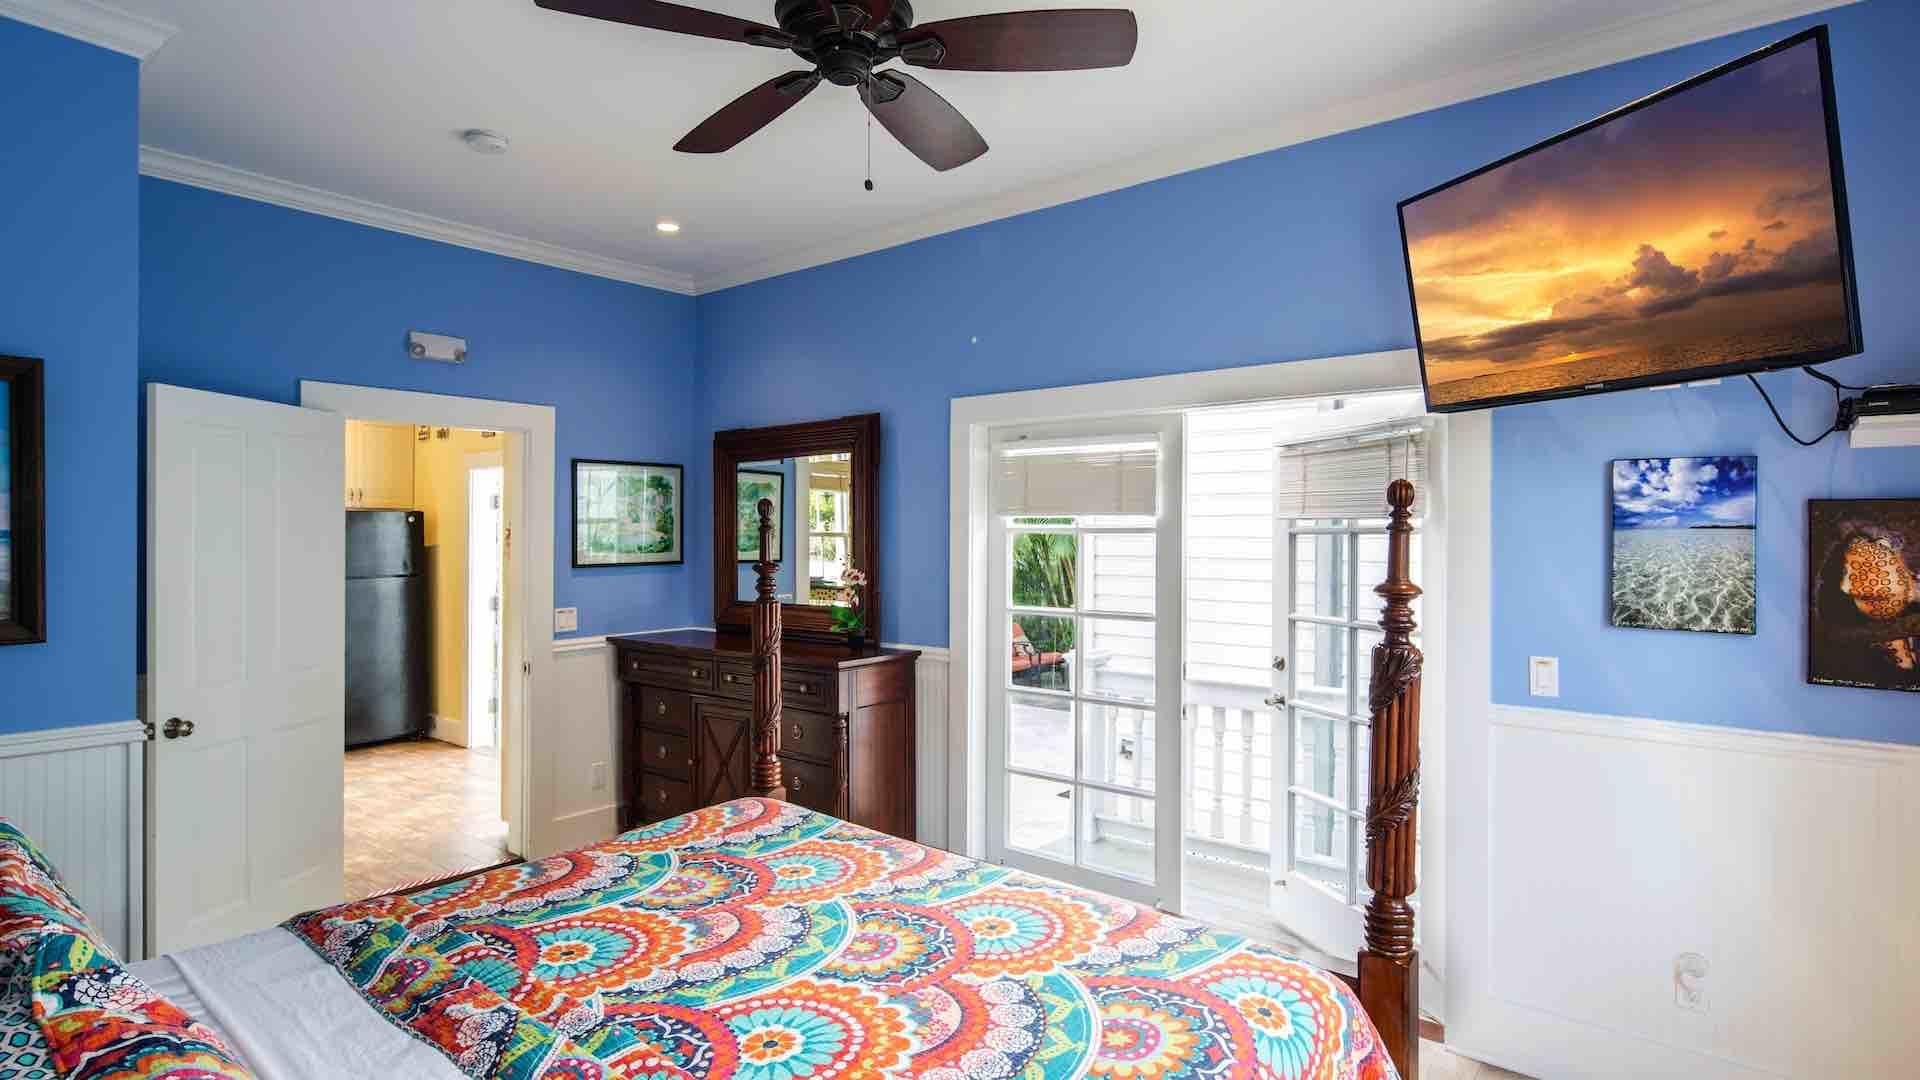 The master suite has French doors out to the back patio...